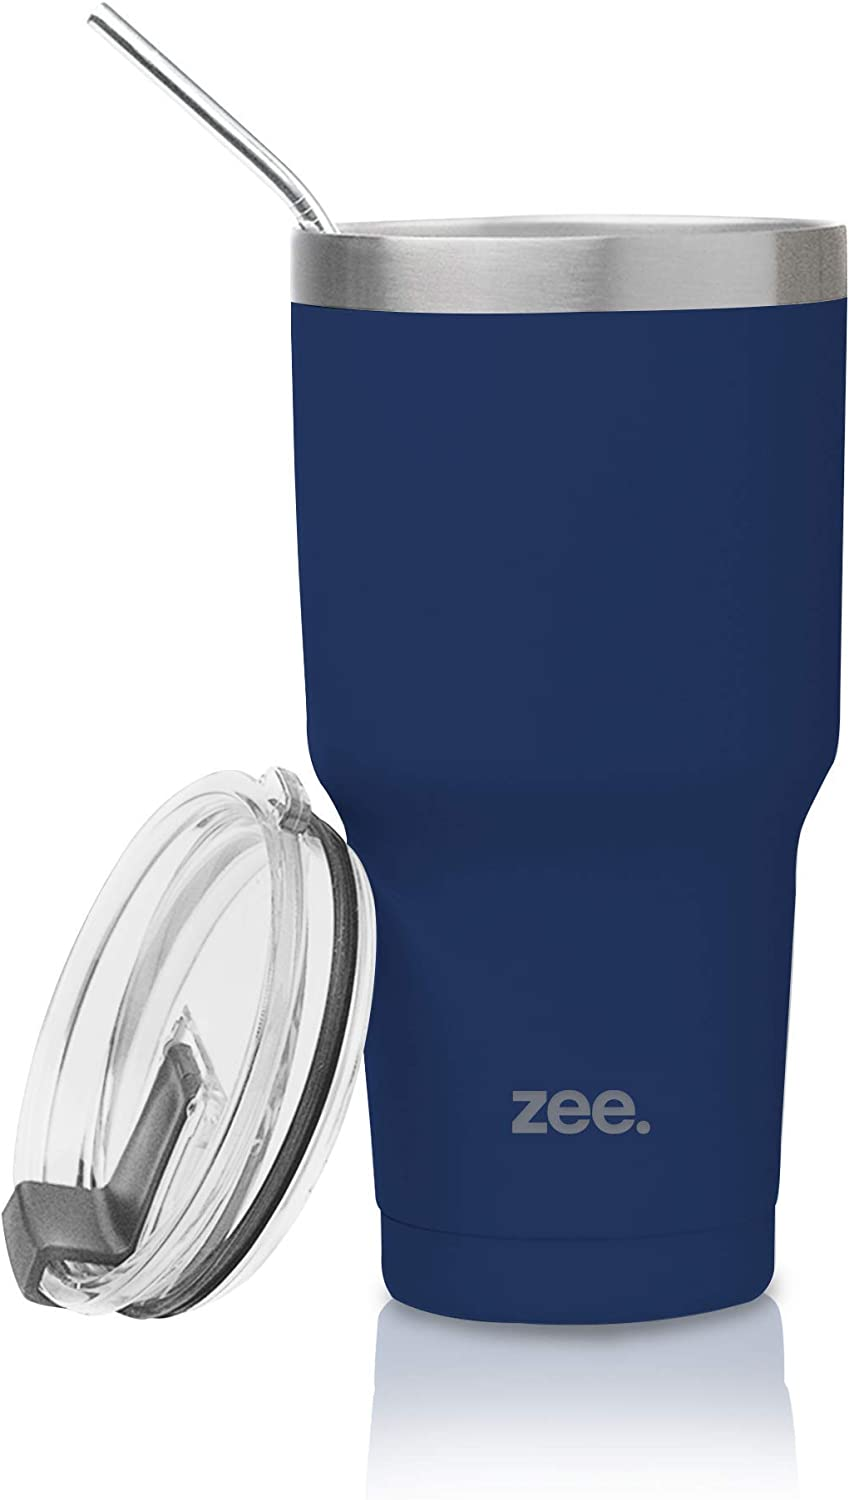 Tumbler with Straw & Cleaning Brush - Vacum Insulated Stainless Steel Tumbler Cup For Hot & Cold Beverages - Non-Slip, Anti-Splash, Sweat-Proof, Portable Travel Mugs by Zee (Blue Marlin, 30 oz)